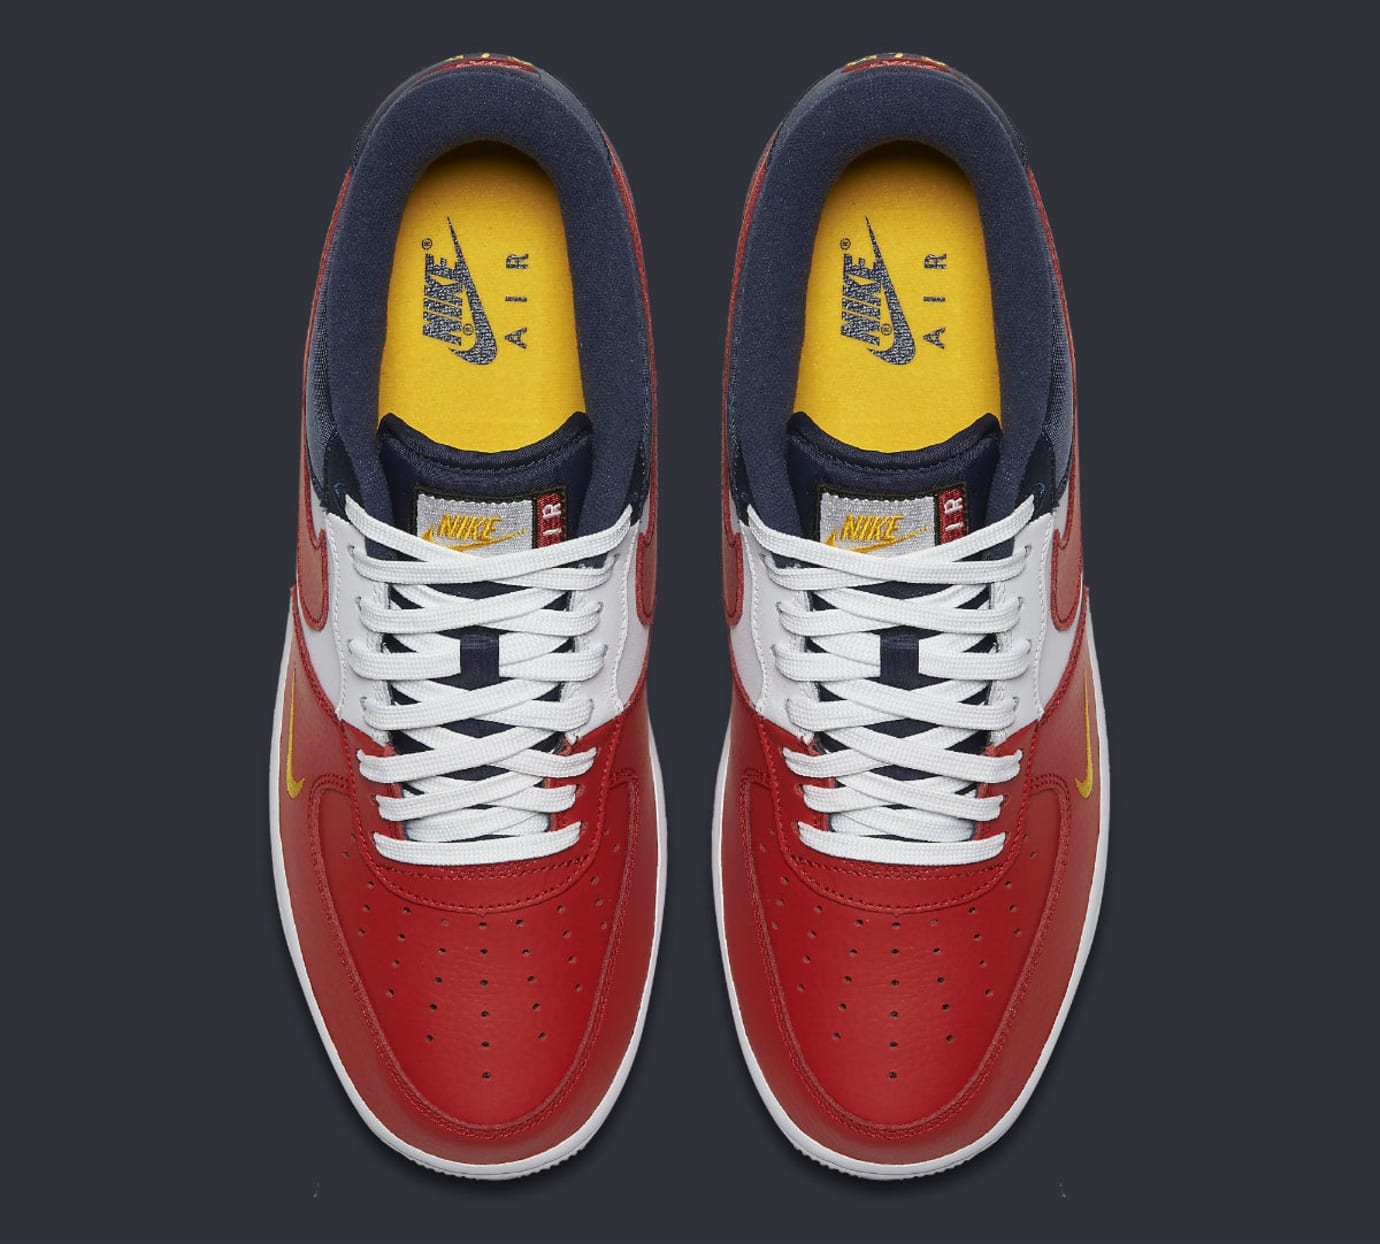 Nike Air Force 1 Low Mini Swoosh USA Release Date Top 823511-601